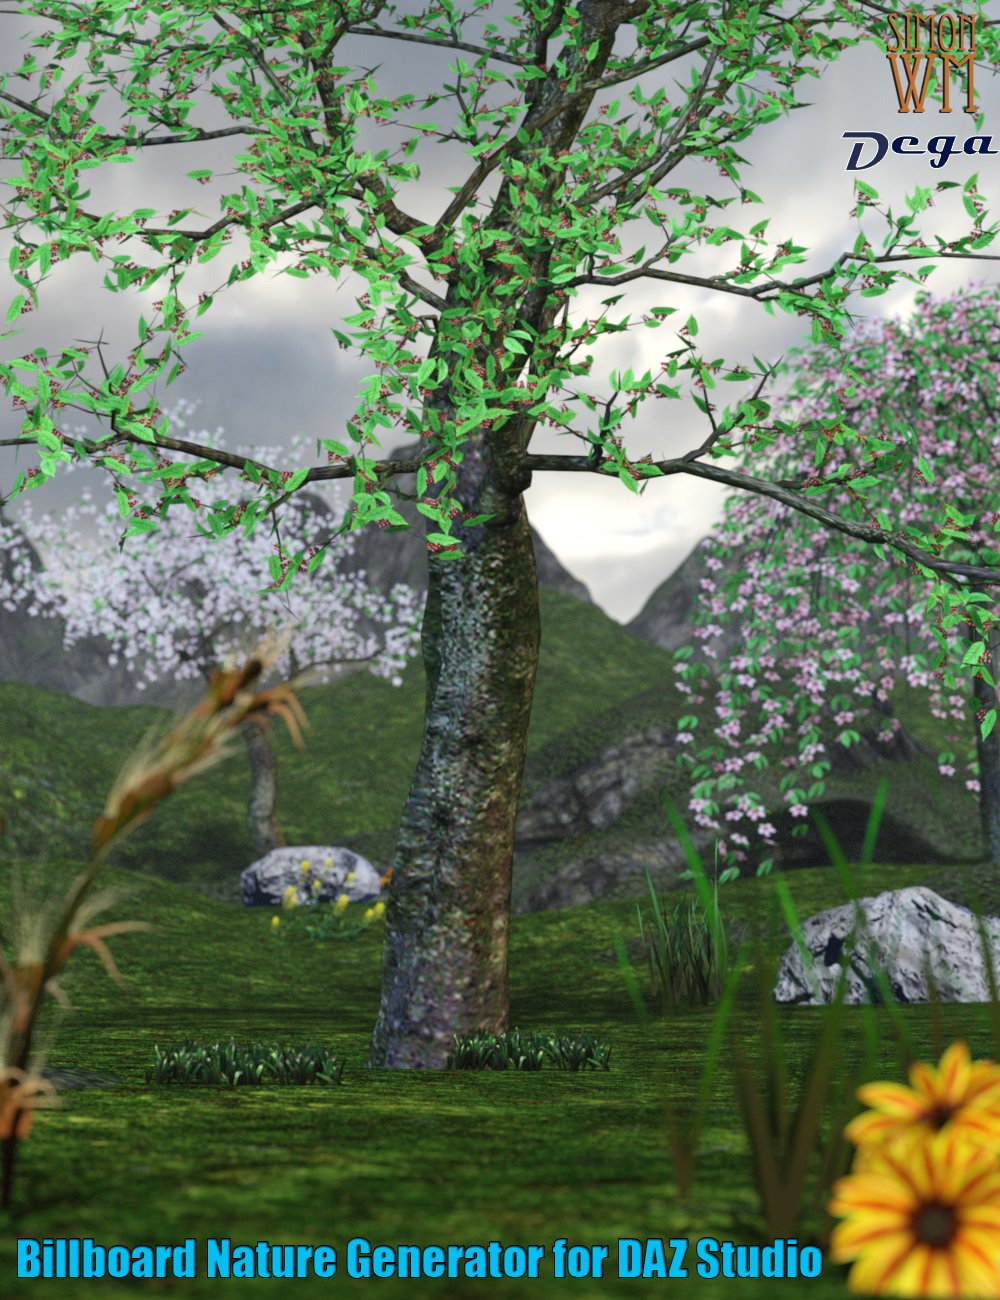 Nature Billboards for Daz Studio by: SimonWMDega, 3D Models by Daz 3D